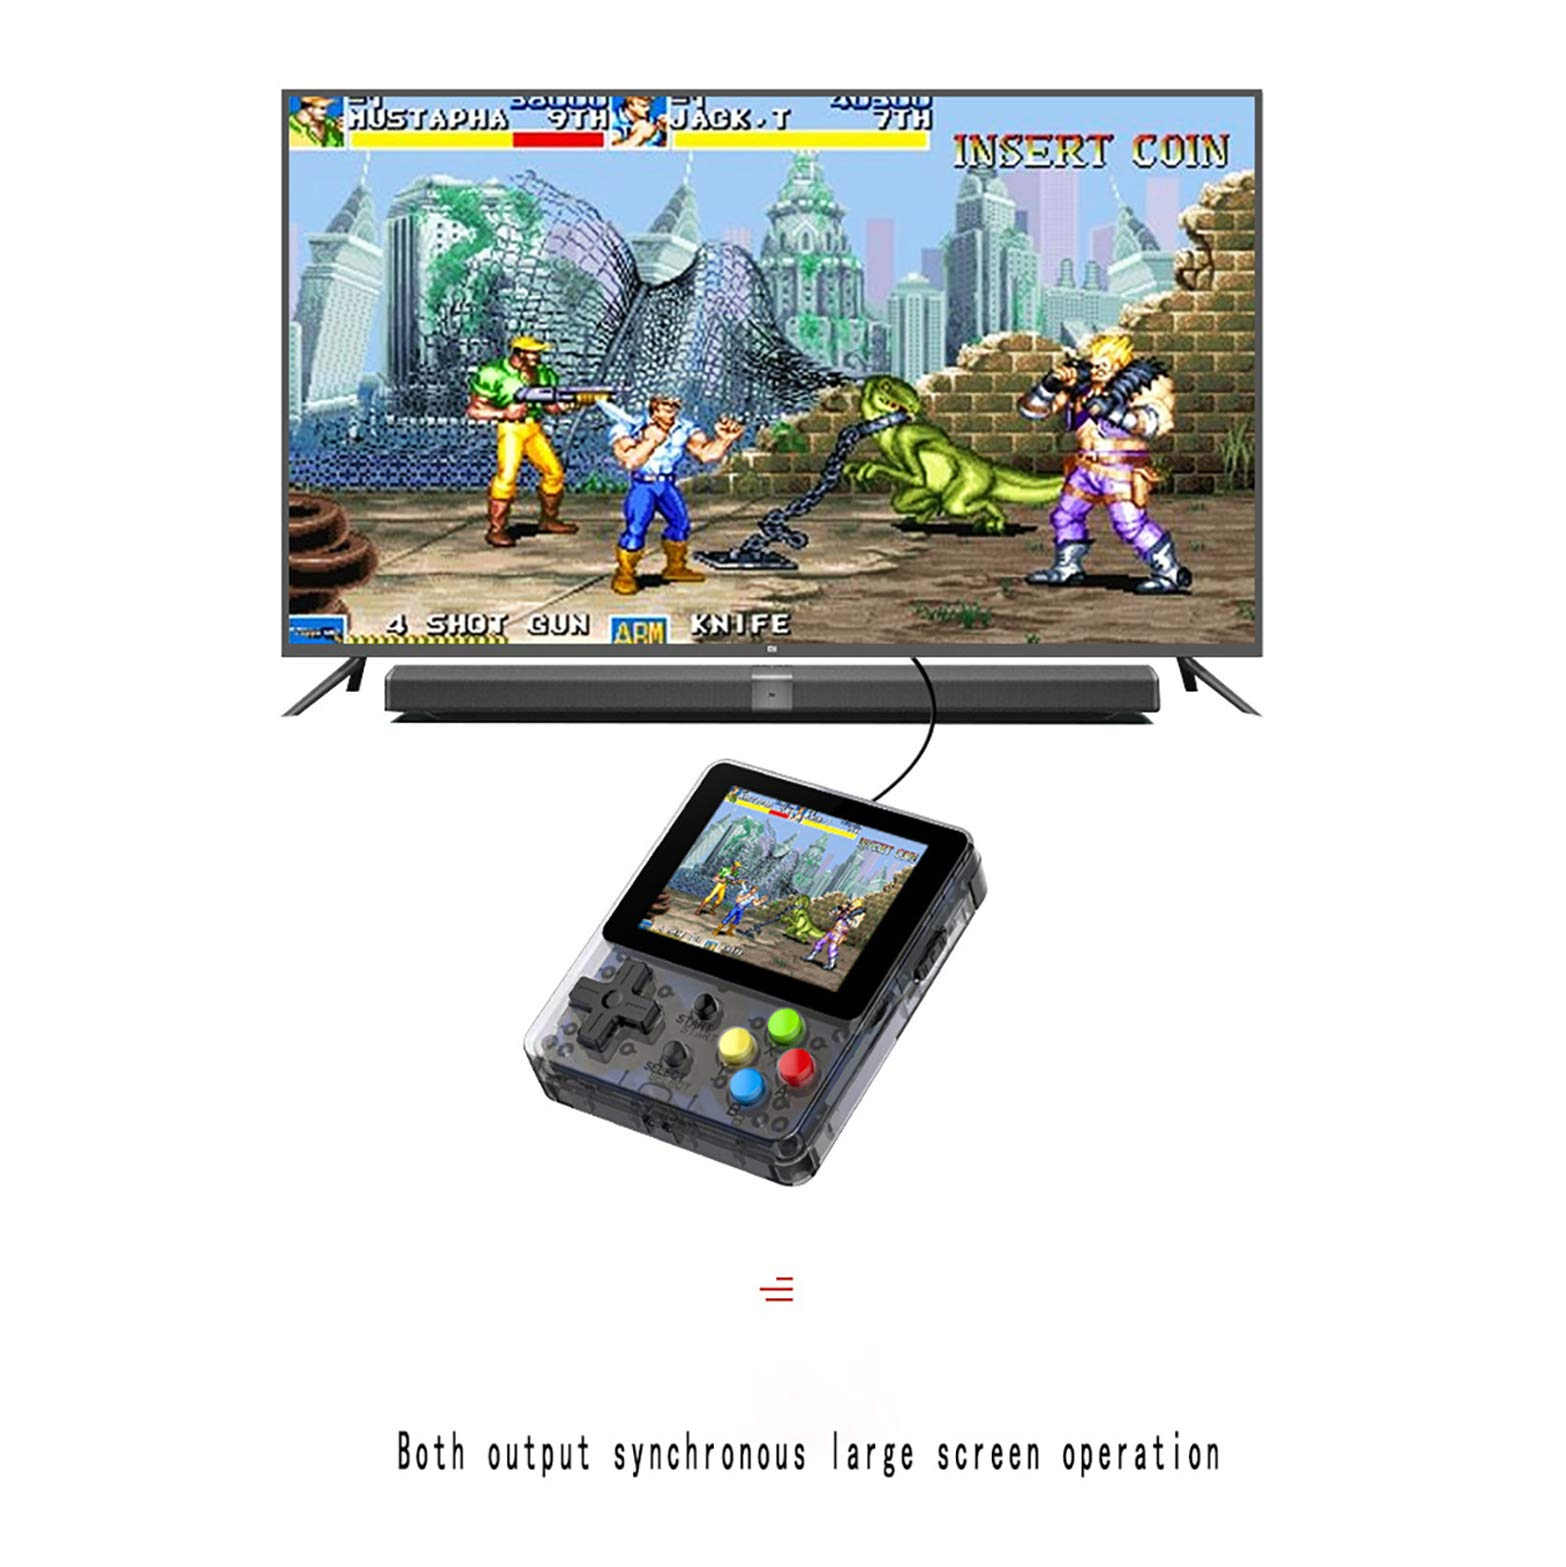 Basde LDK Game Handheld Gaming Console, Retro Portable Gaming System Handheld Game Console Kids Adults Screen by 2.6 Thumbs Mini Palm Nostalgia Console Children of Family TV Video (Yellow) by Basde (Image #3)